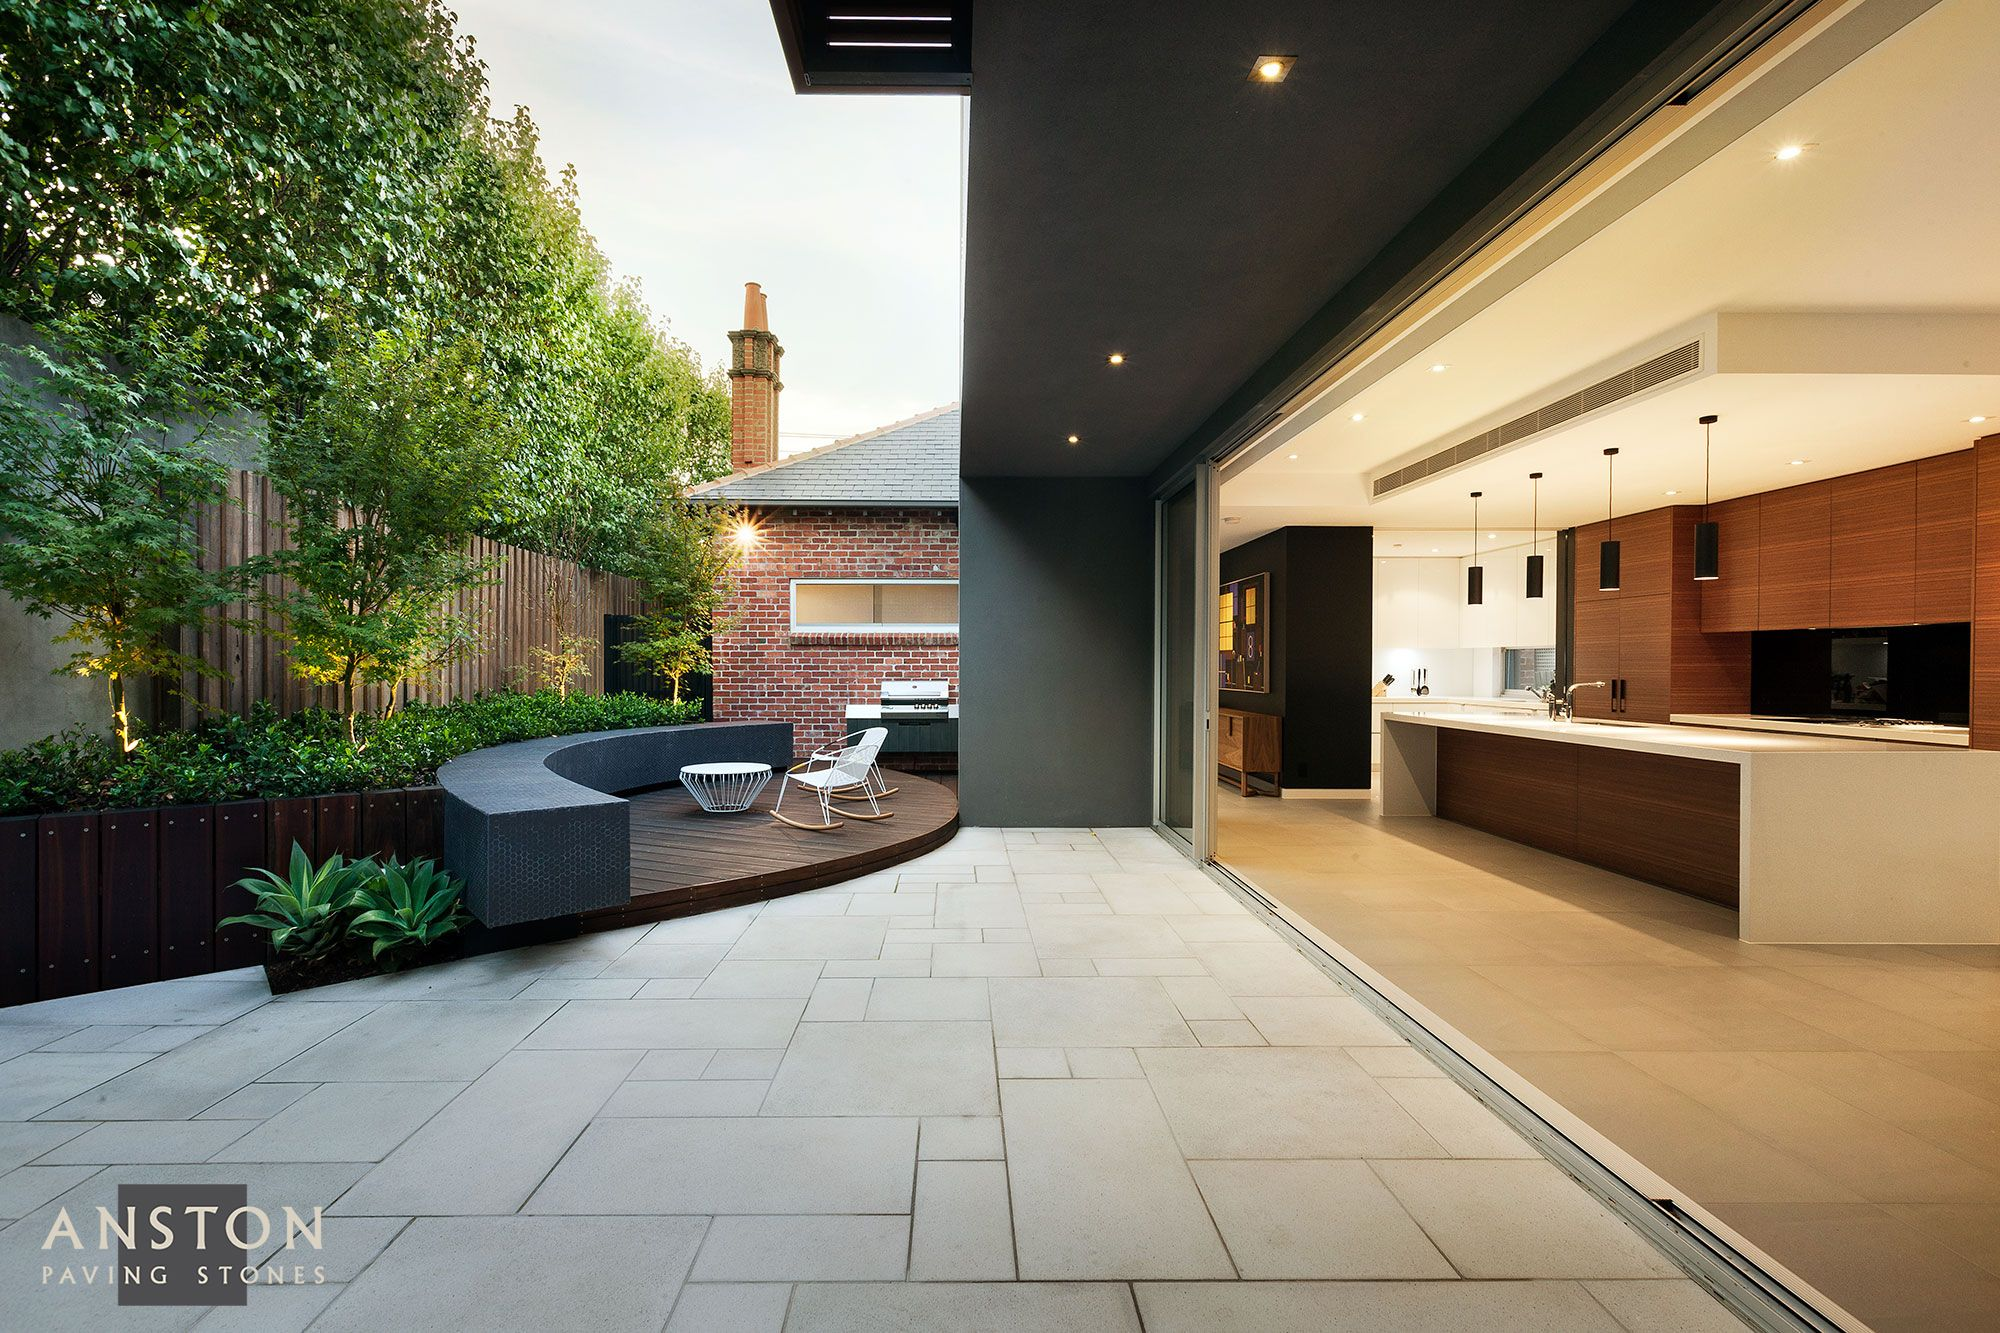 nathan burkett design's stunning patio design features the granite